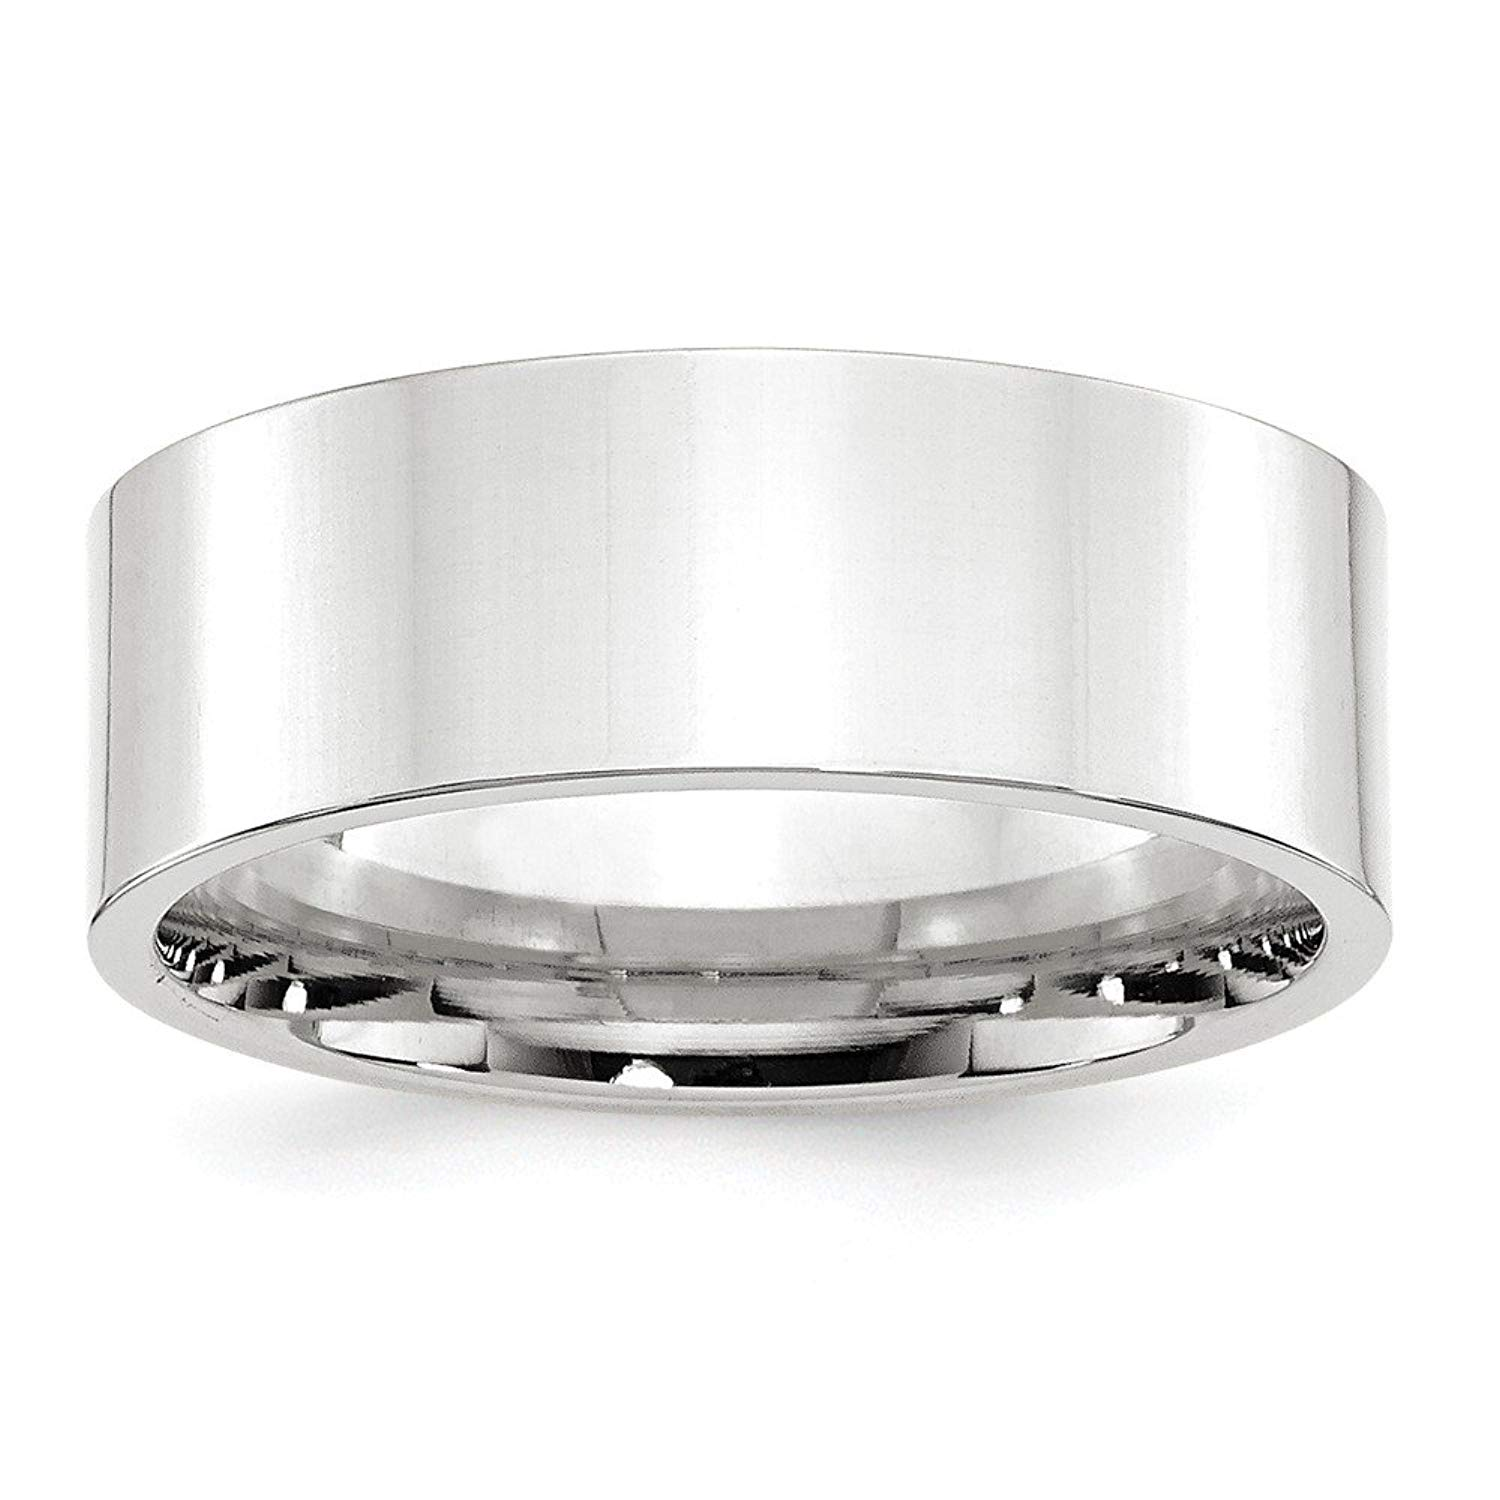 Perfect Jewelry Gift 14KW 8mm Standard Flat Comfort Fit Band Size 8.5